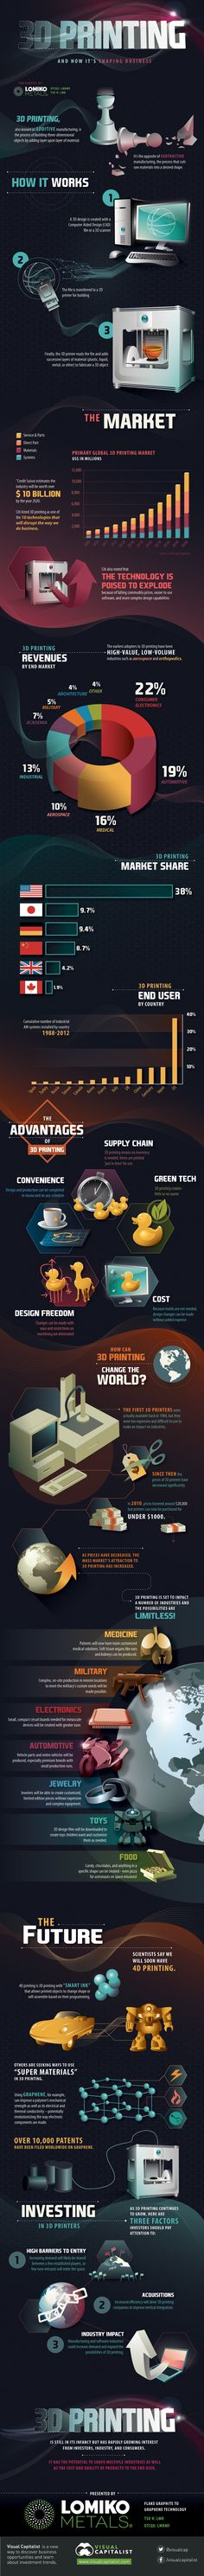 Awesome new 3D Printing Infograph:  http://3dprintboard.com/showthread.php?3709-New-3D-Printing-Infograph-from-Lomiko-Metals